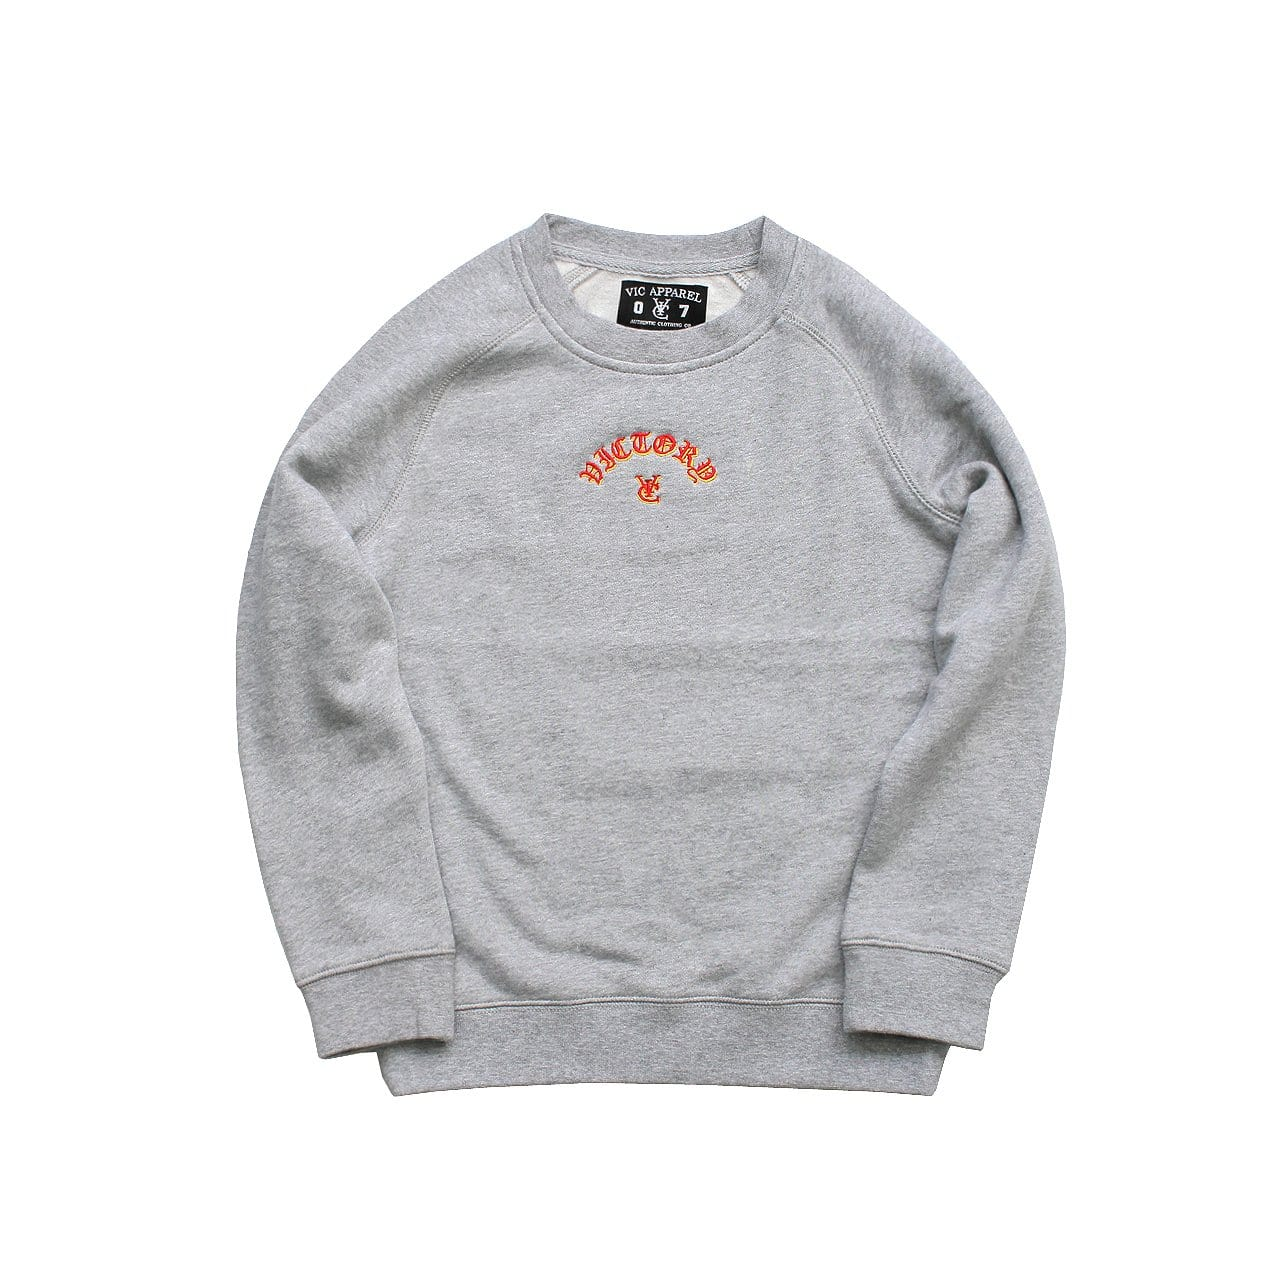 FLAME KIDS CREW - GREY MARLE